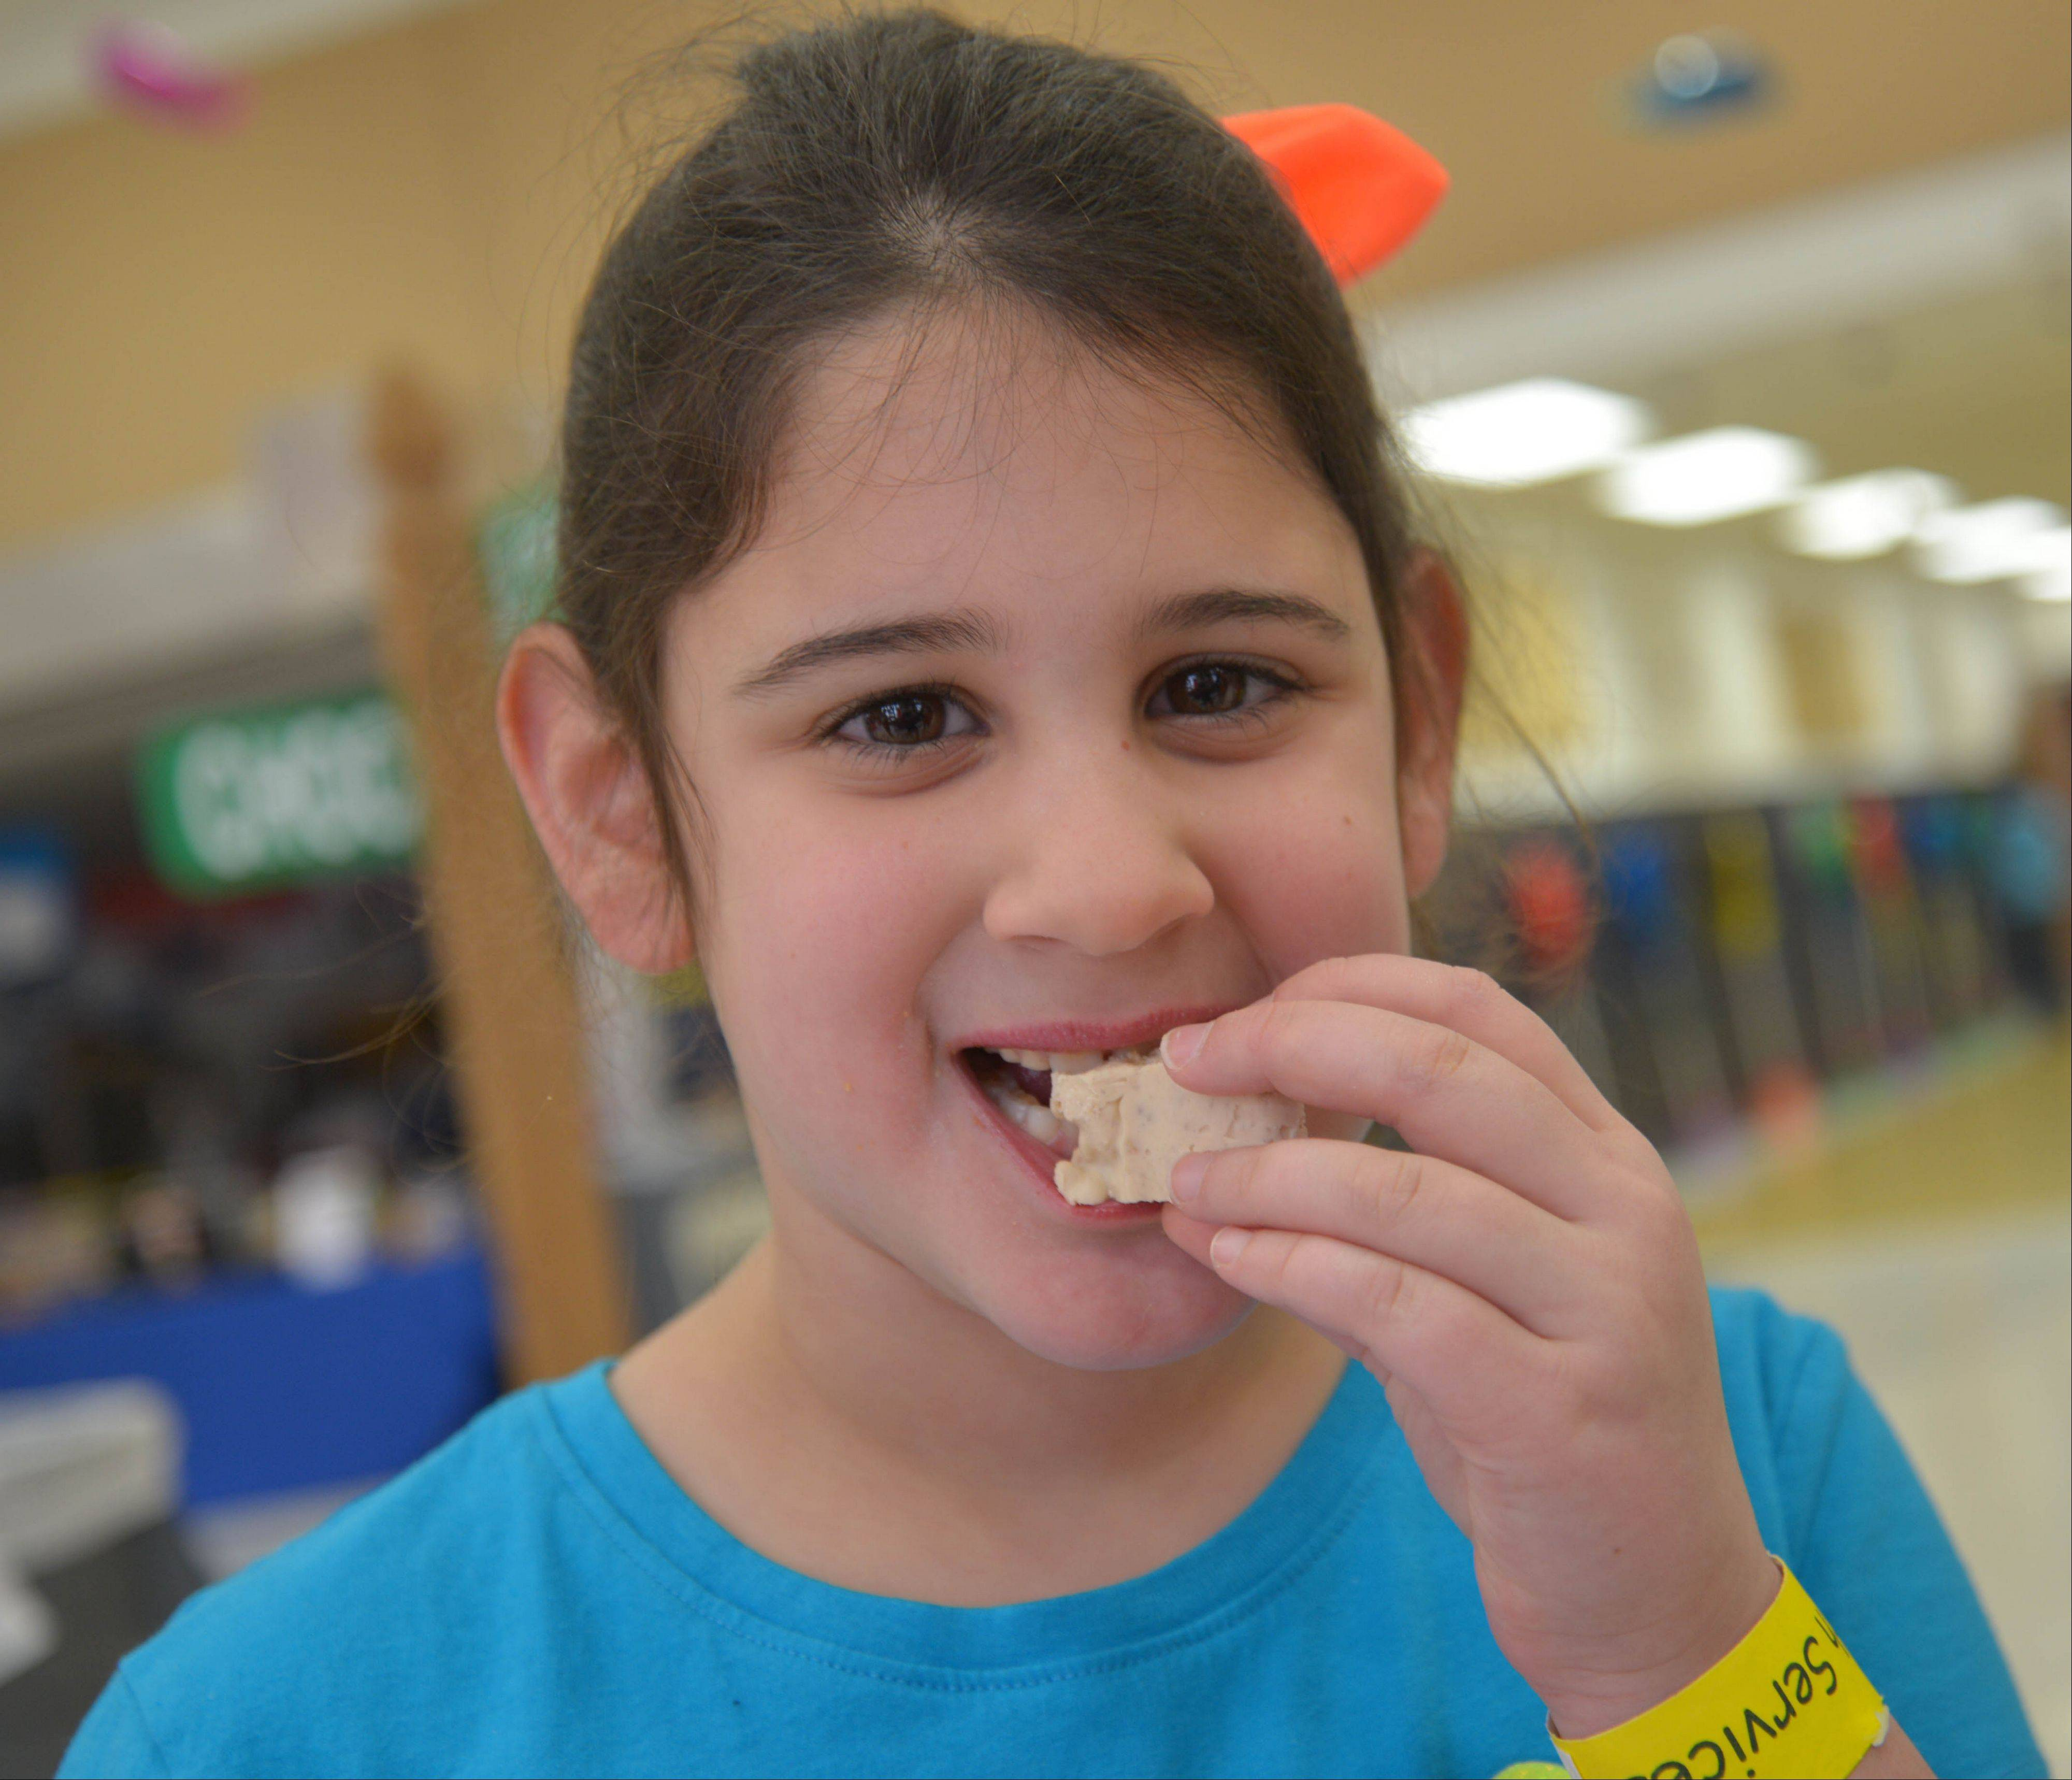 Grace Pantano, 6, of Naperville tastes some chocolate during the 360 Youth Services 11th annual Chocolate Festival Saturday at the Neuqua Valley Freshman Center in Naperville.